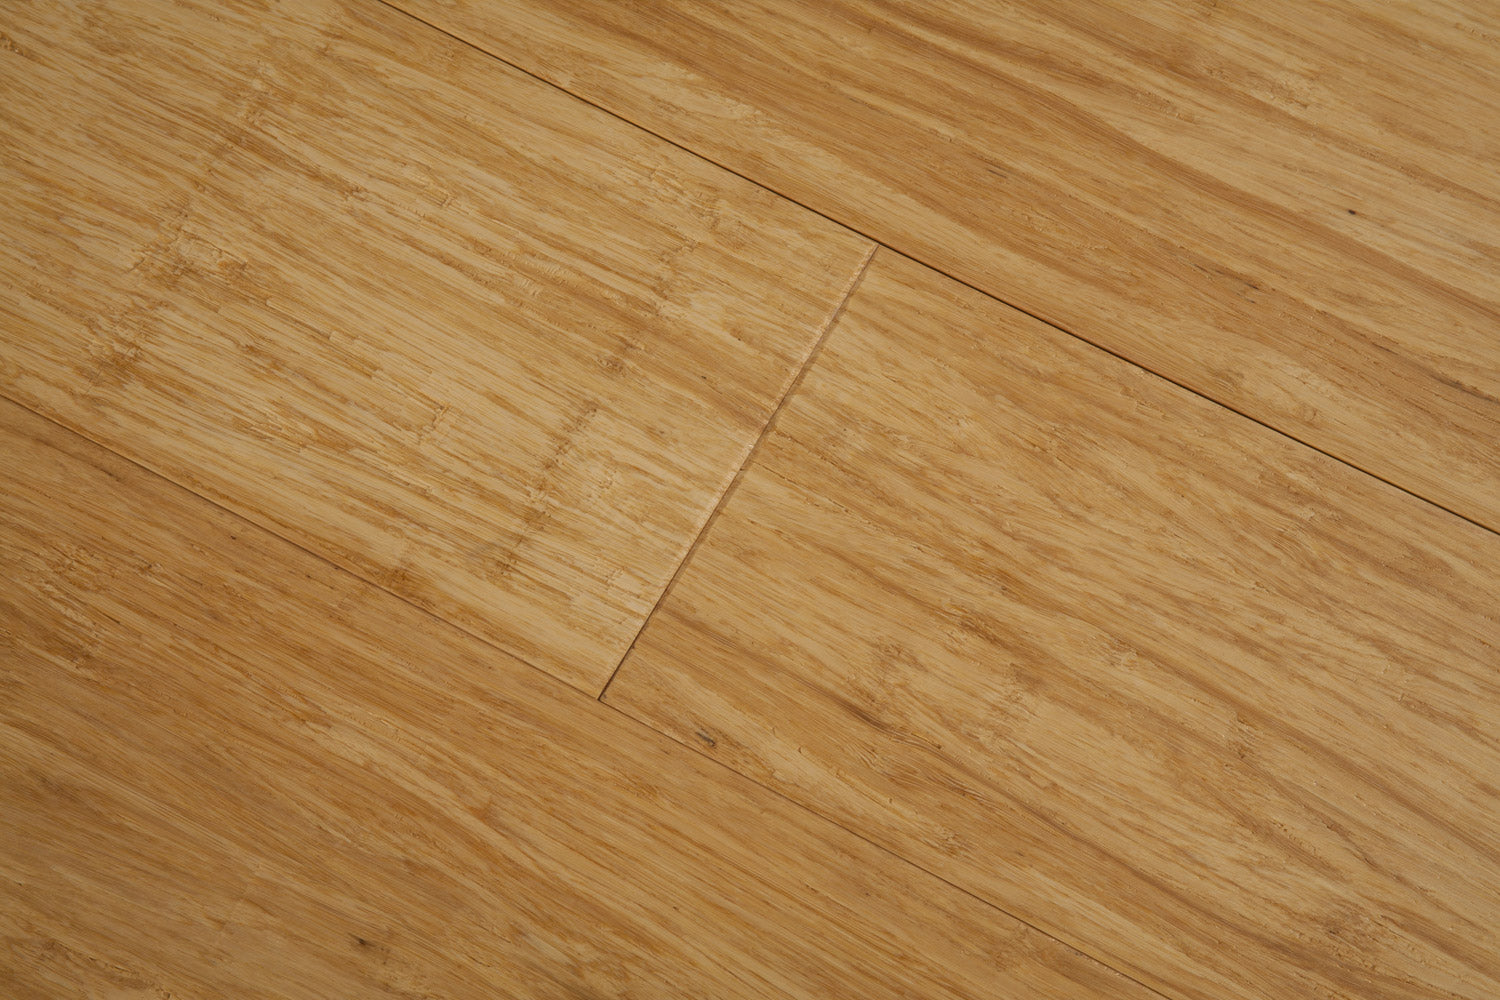 gray mint r click plank lock bamboo yanchi wide builddirect floor angle flooring woven distressed solid strand